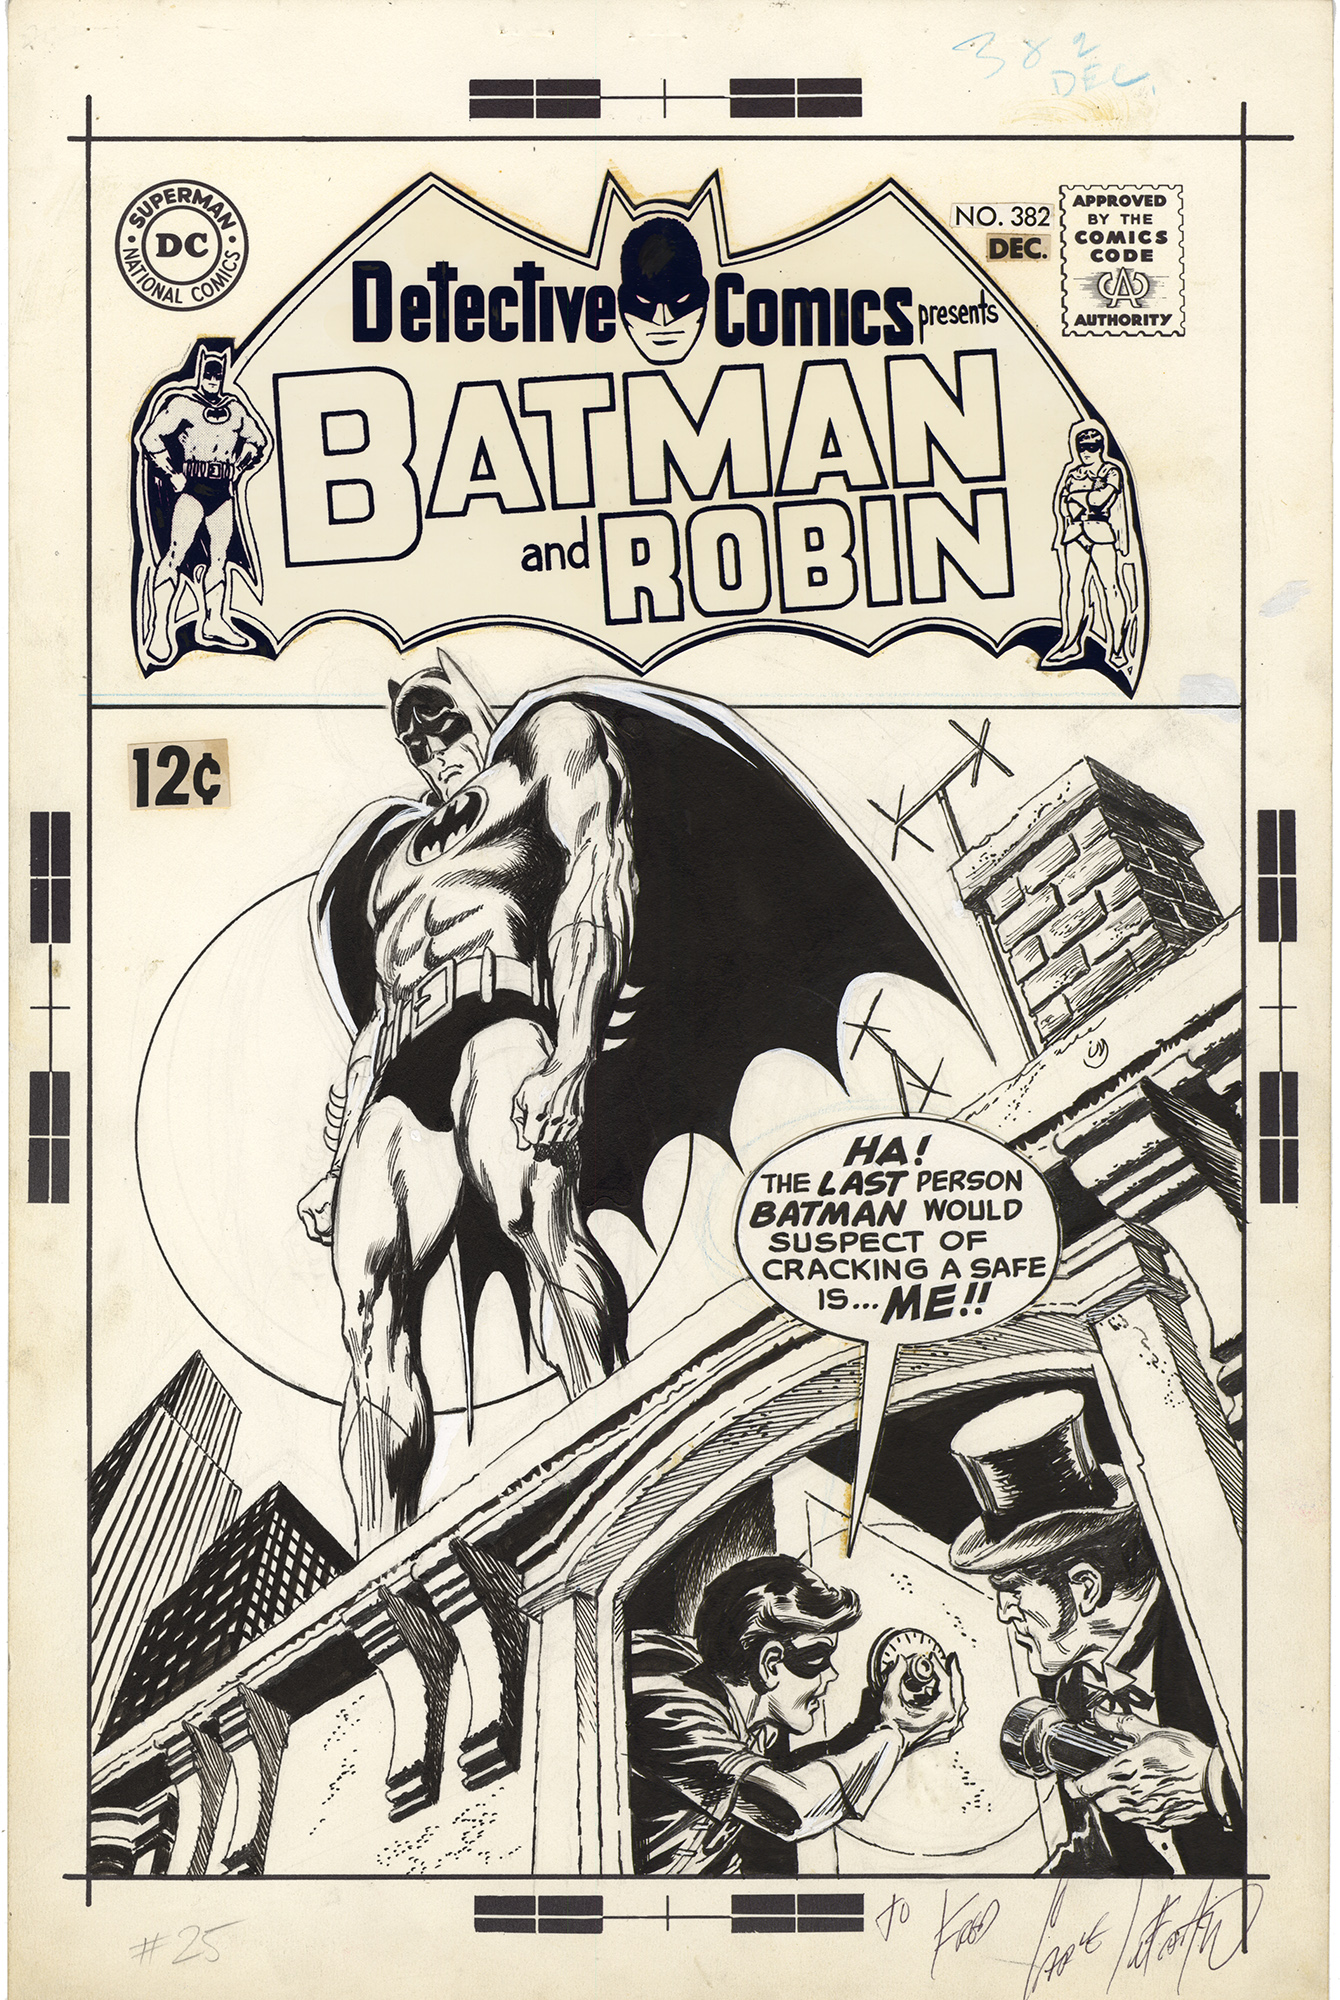 Detective Comics #382 Cover (Signed)